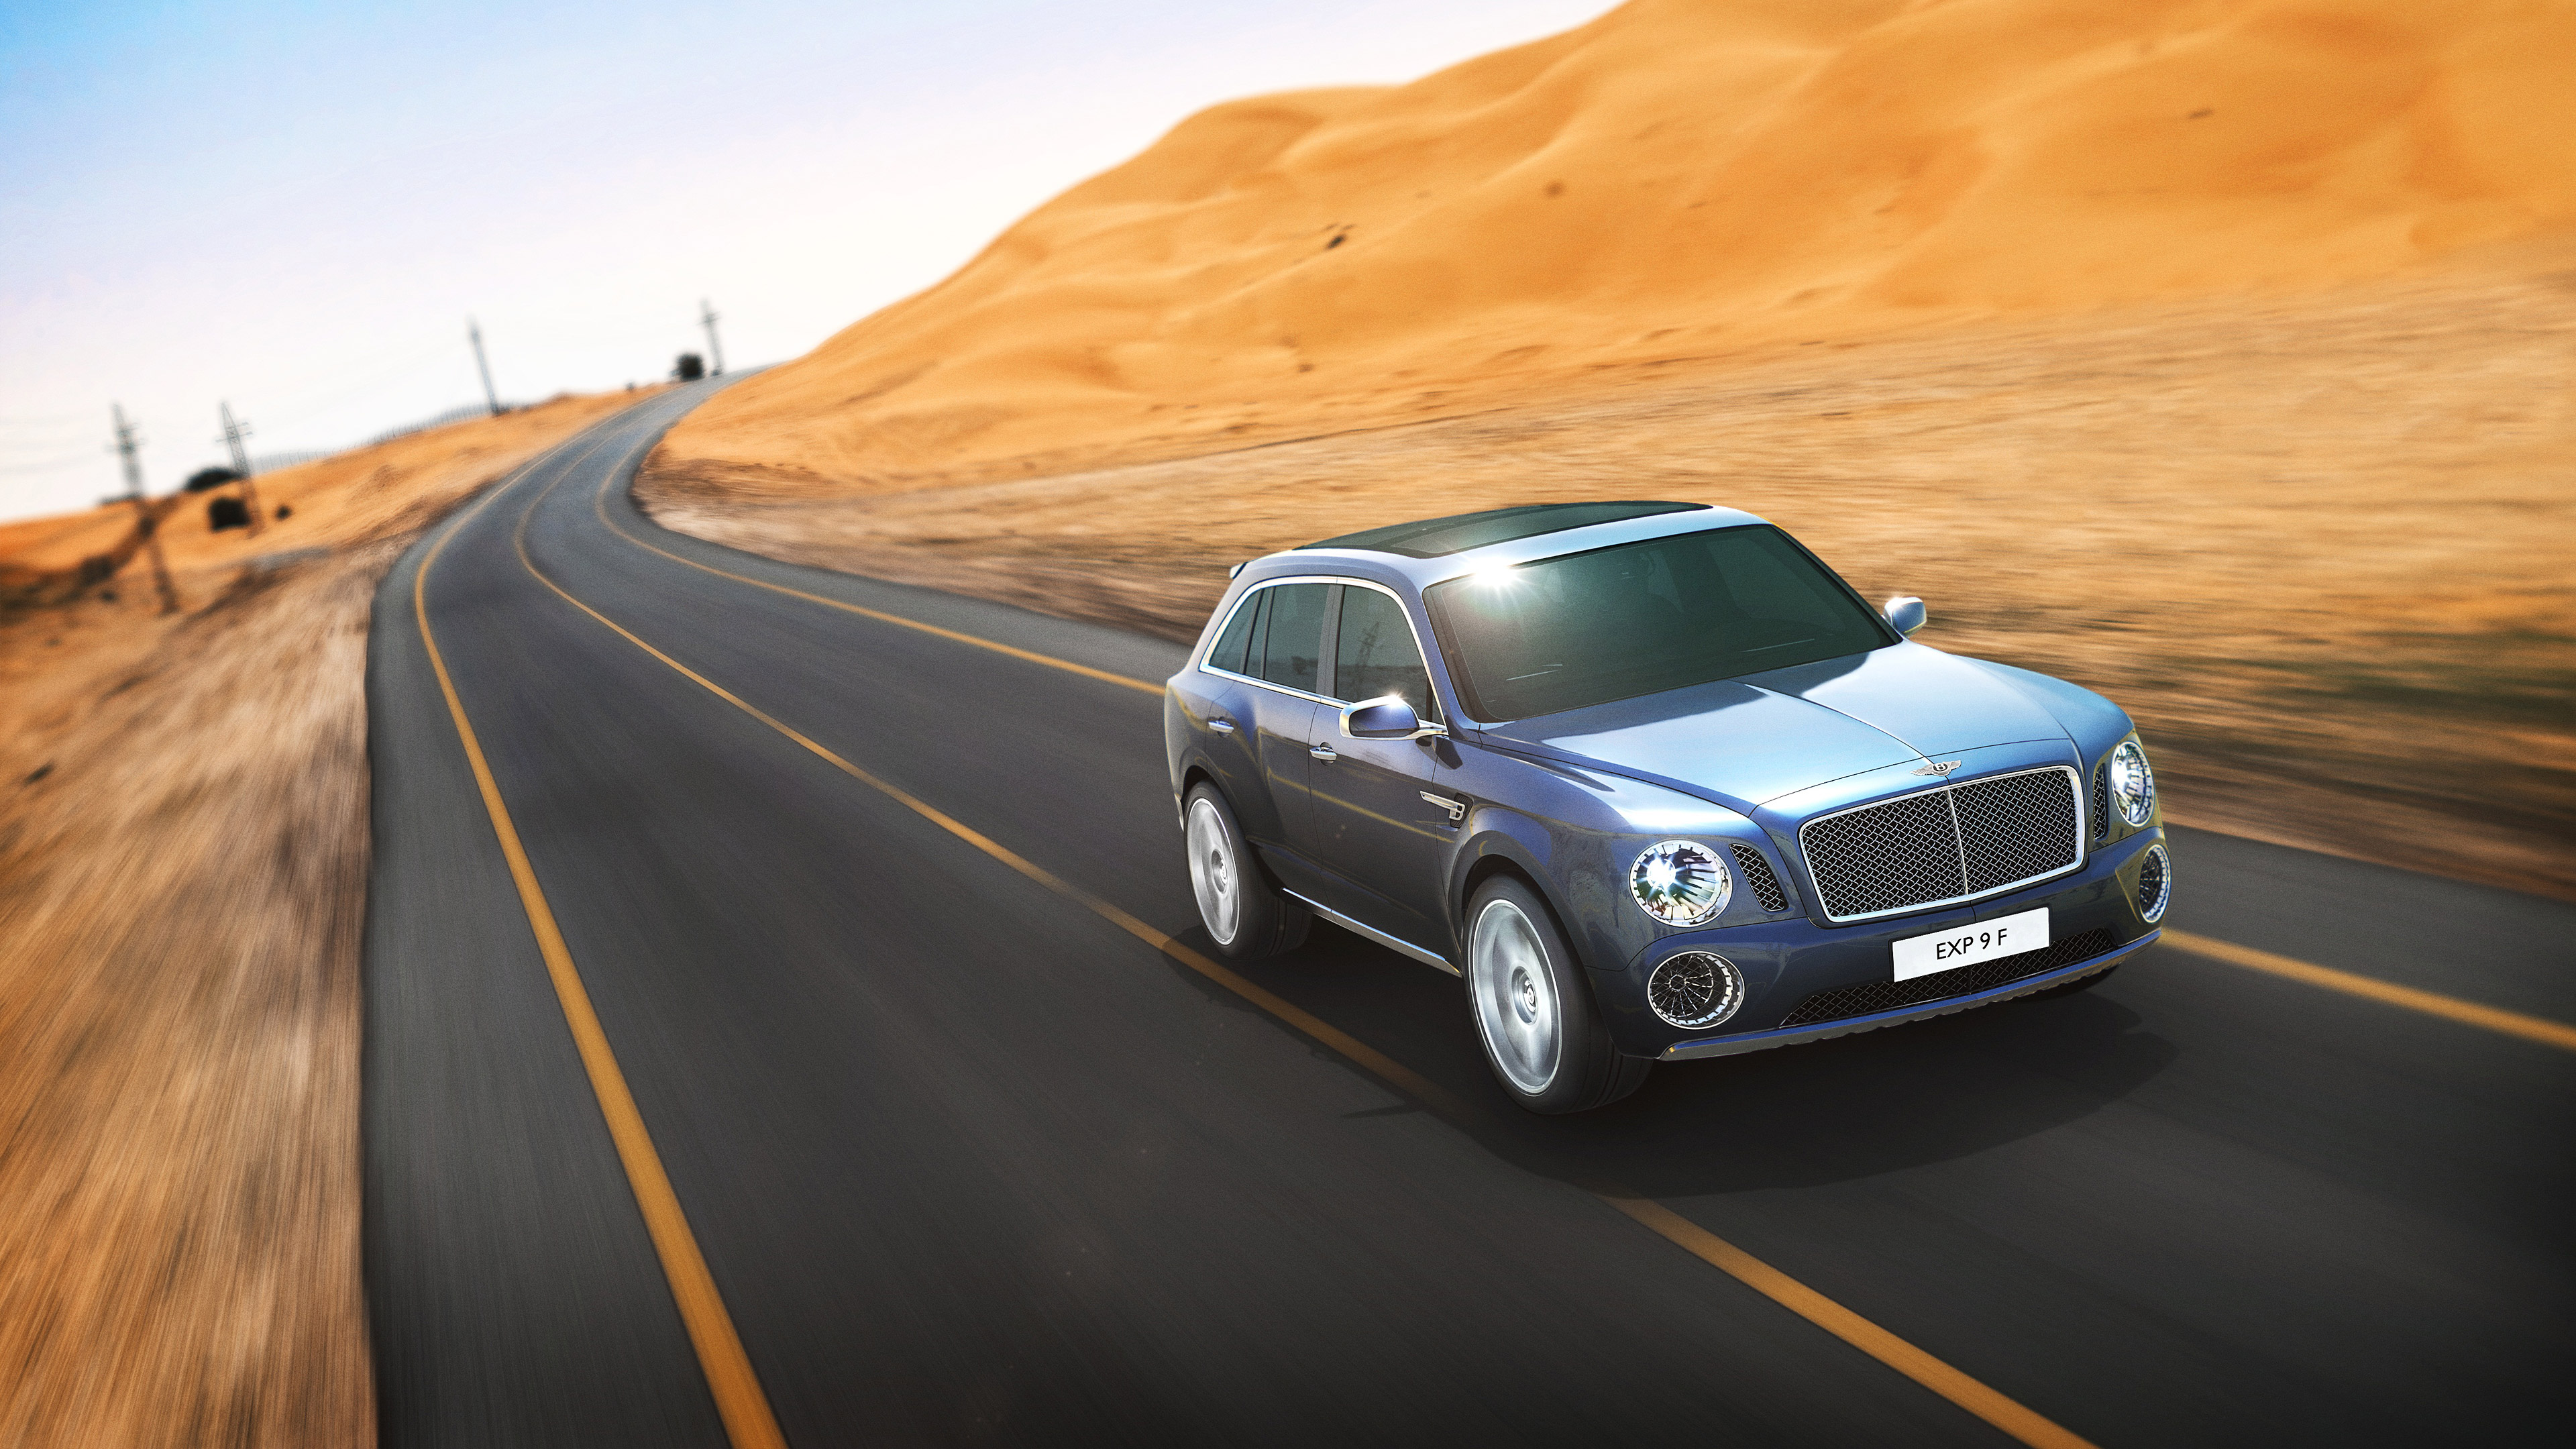 2012 Bentley EXP 9 F Concept Wallpaper.